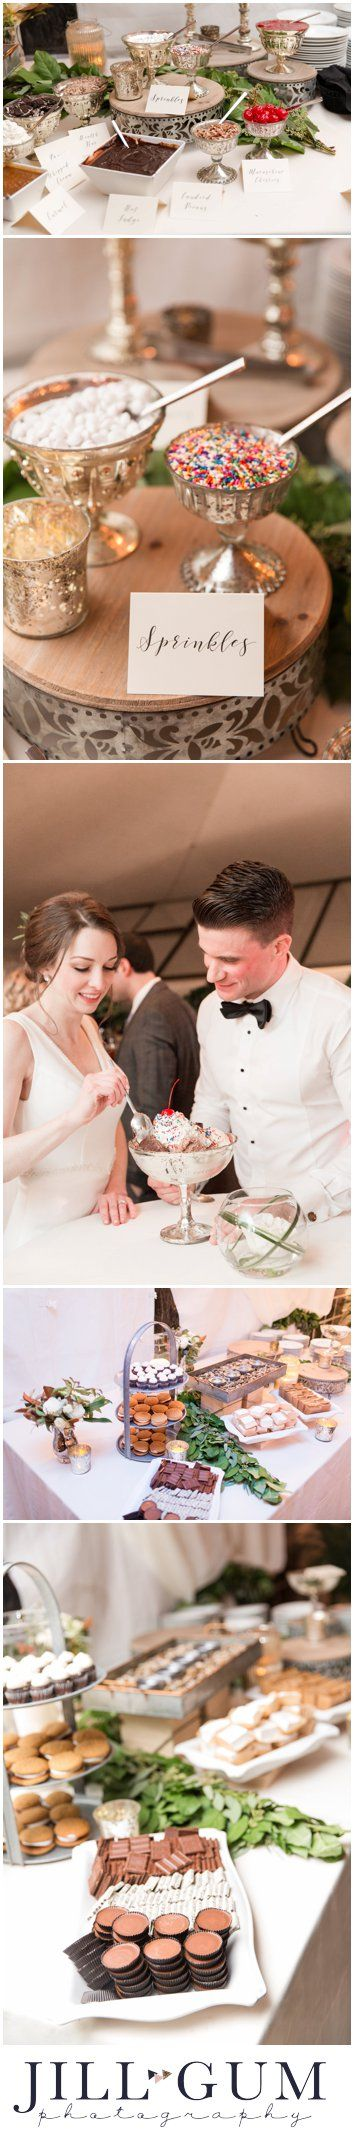 wedding reception, sundae bar at wedding reception, wedding cake alternatives, dessert bar at wedding reception, outdoor white tent reception, ice cream sundae bar, unique wedding reception dessert ideas, elegant outdoor wedding, sophisticated outdoor neutral and ivory wedding